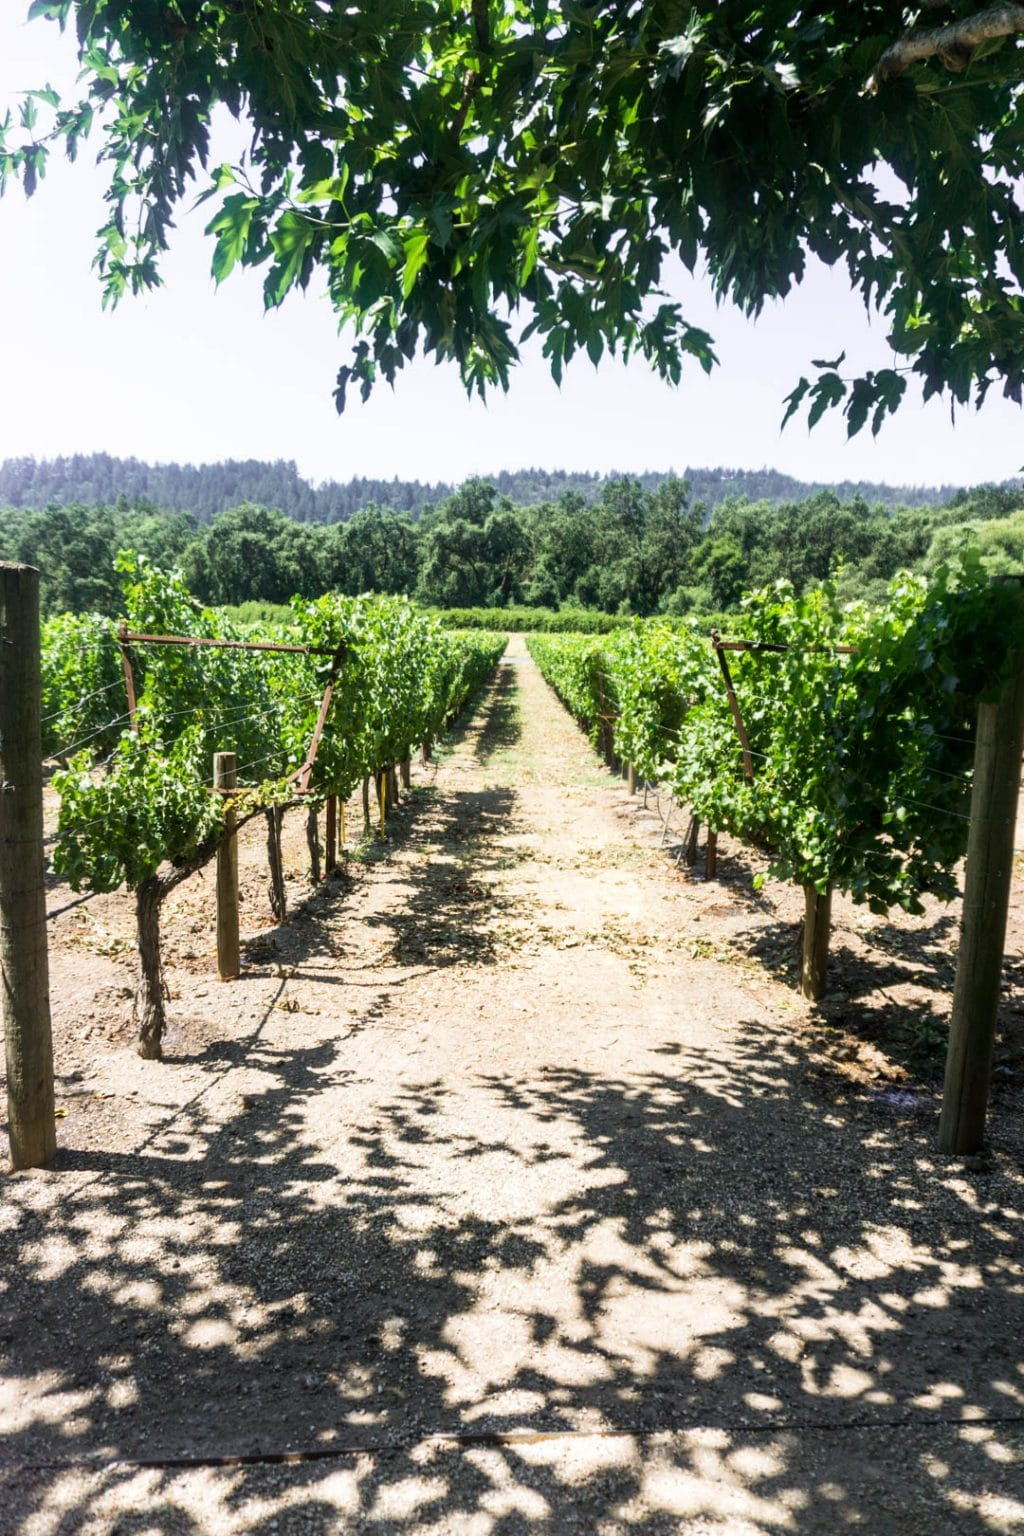 Napa valley travel guide and itinerary